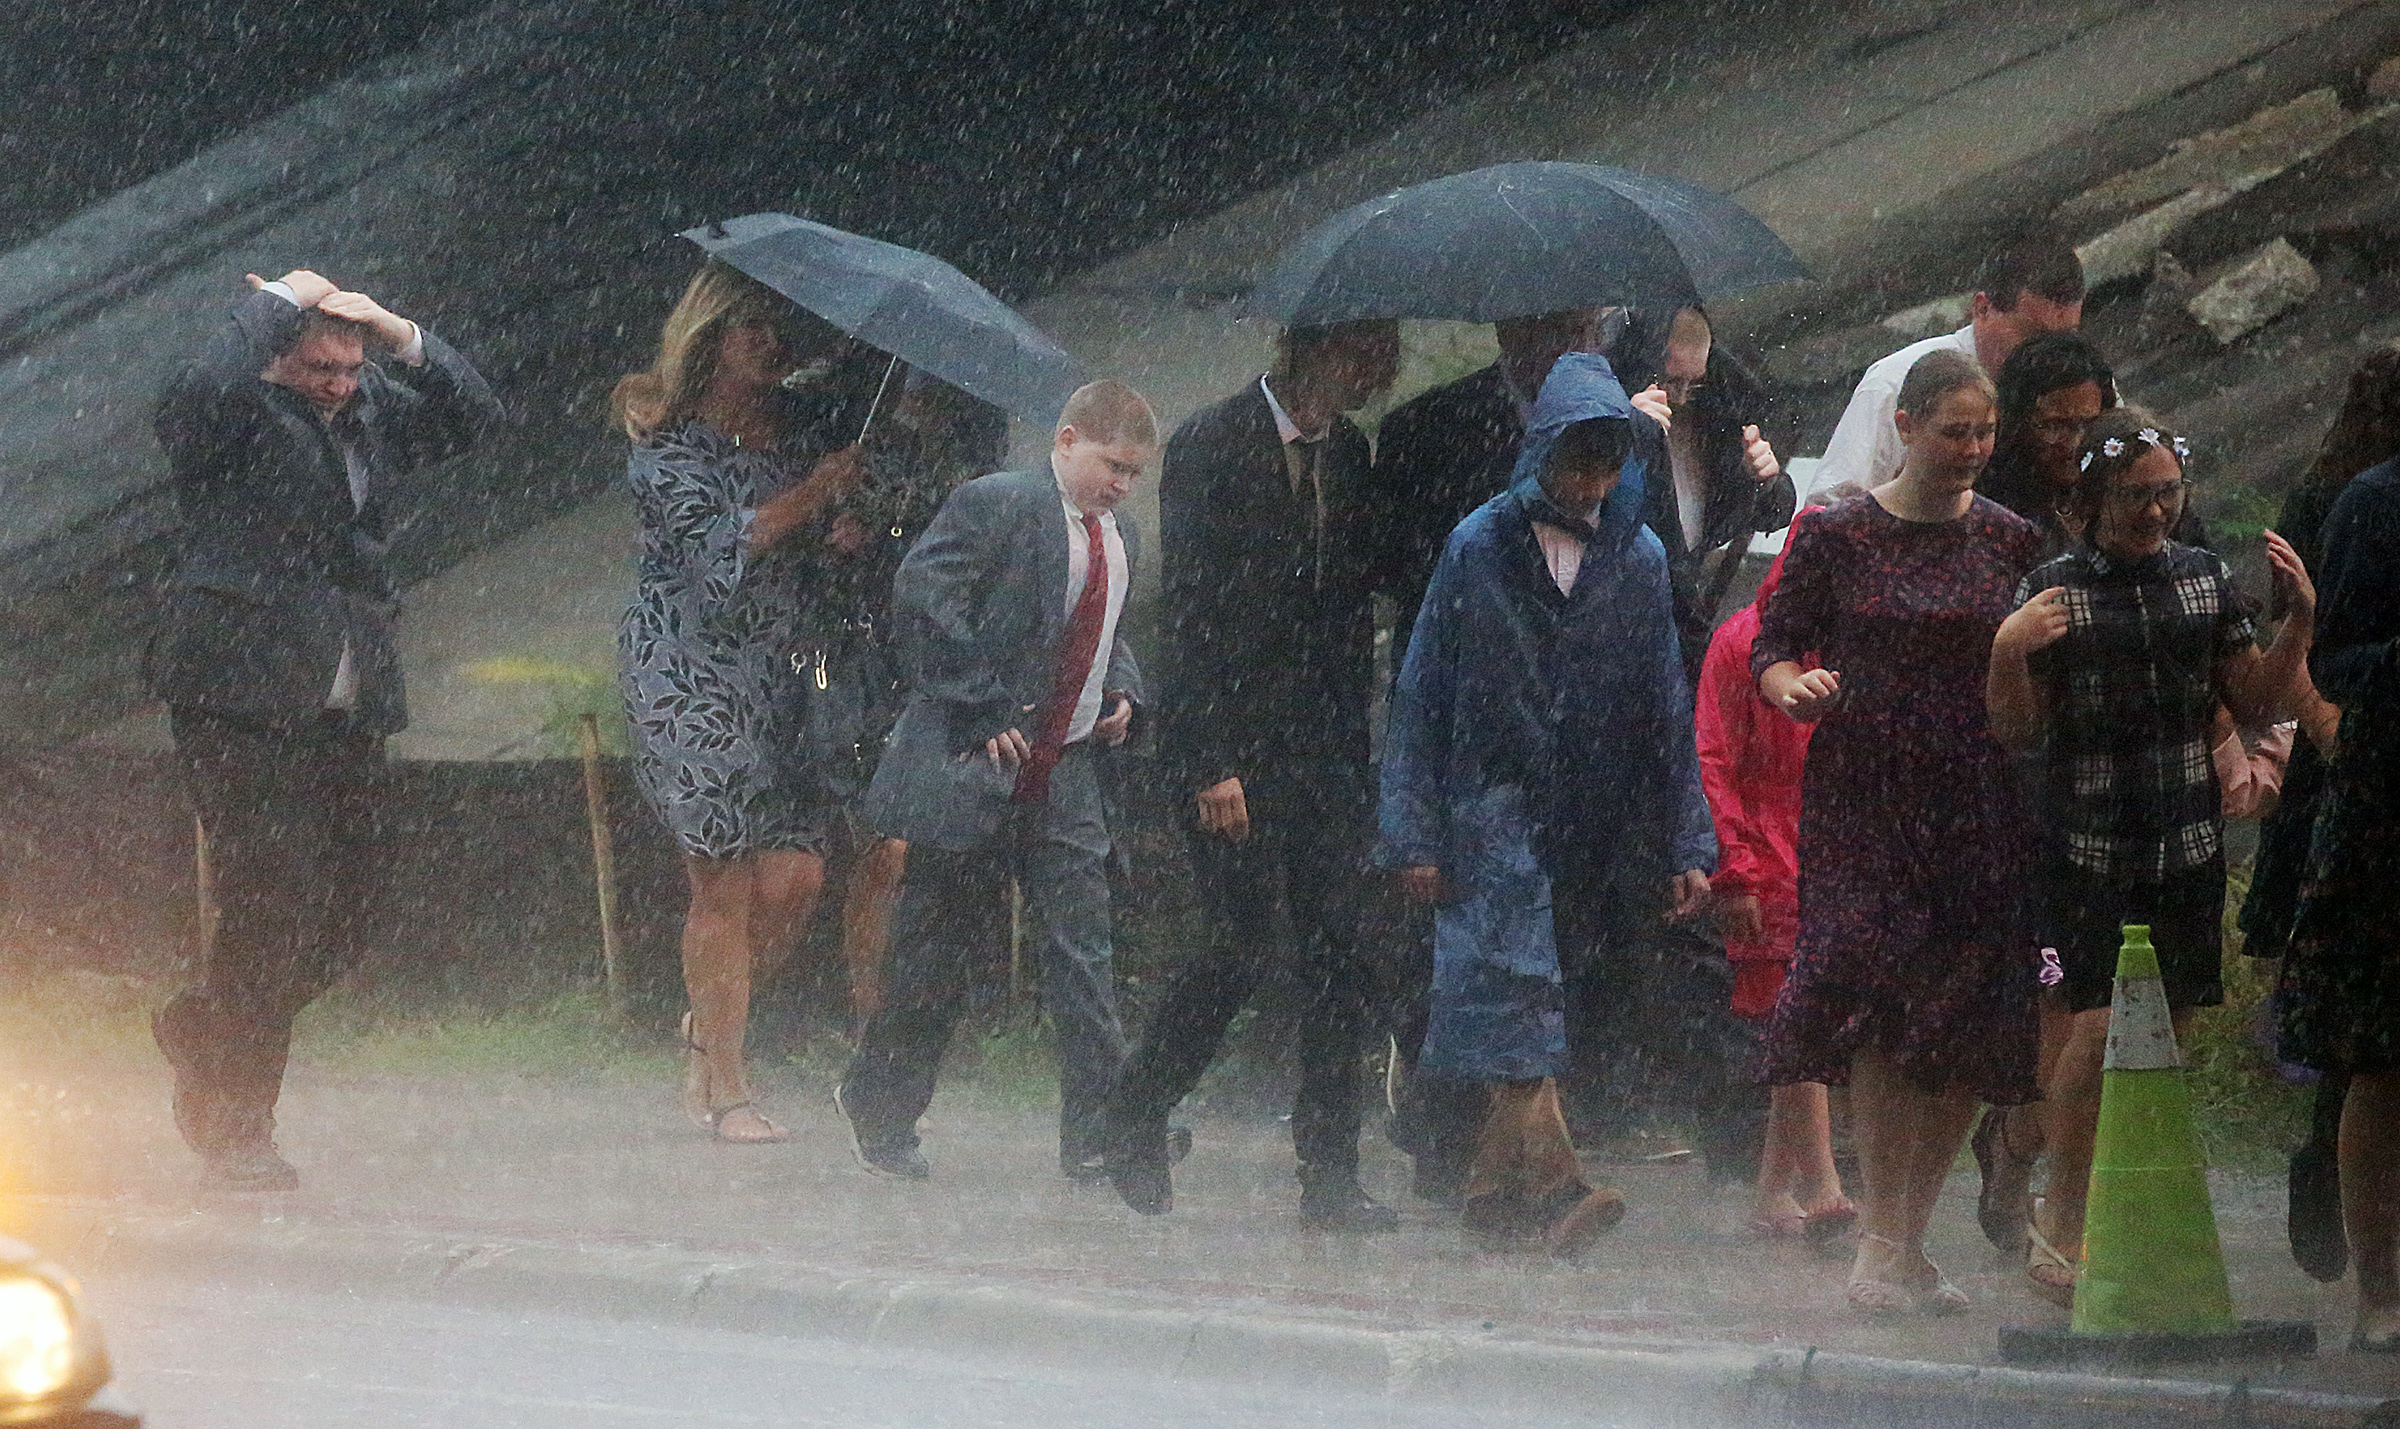 Devotional attendees brave the rain as they make their way to the Amway Center to listen to President Russell M. Nelson and other Church leaders speak in Orlando, Florida, on Sunday, June 9, 2019.